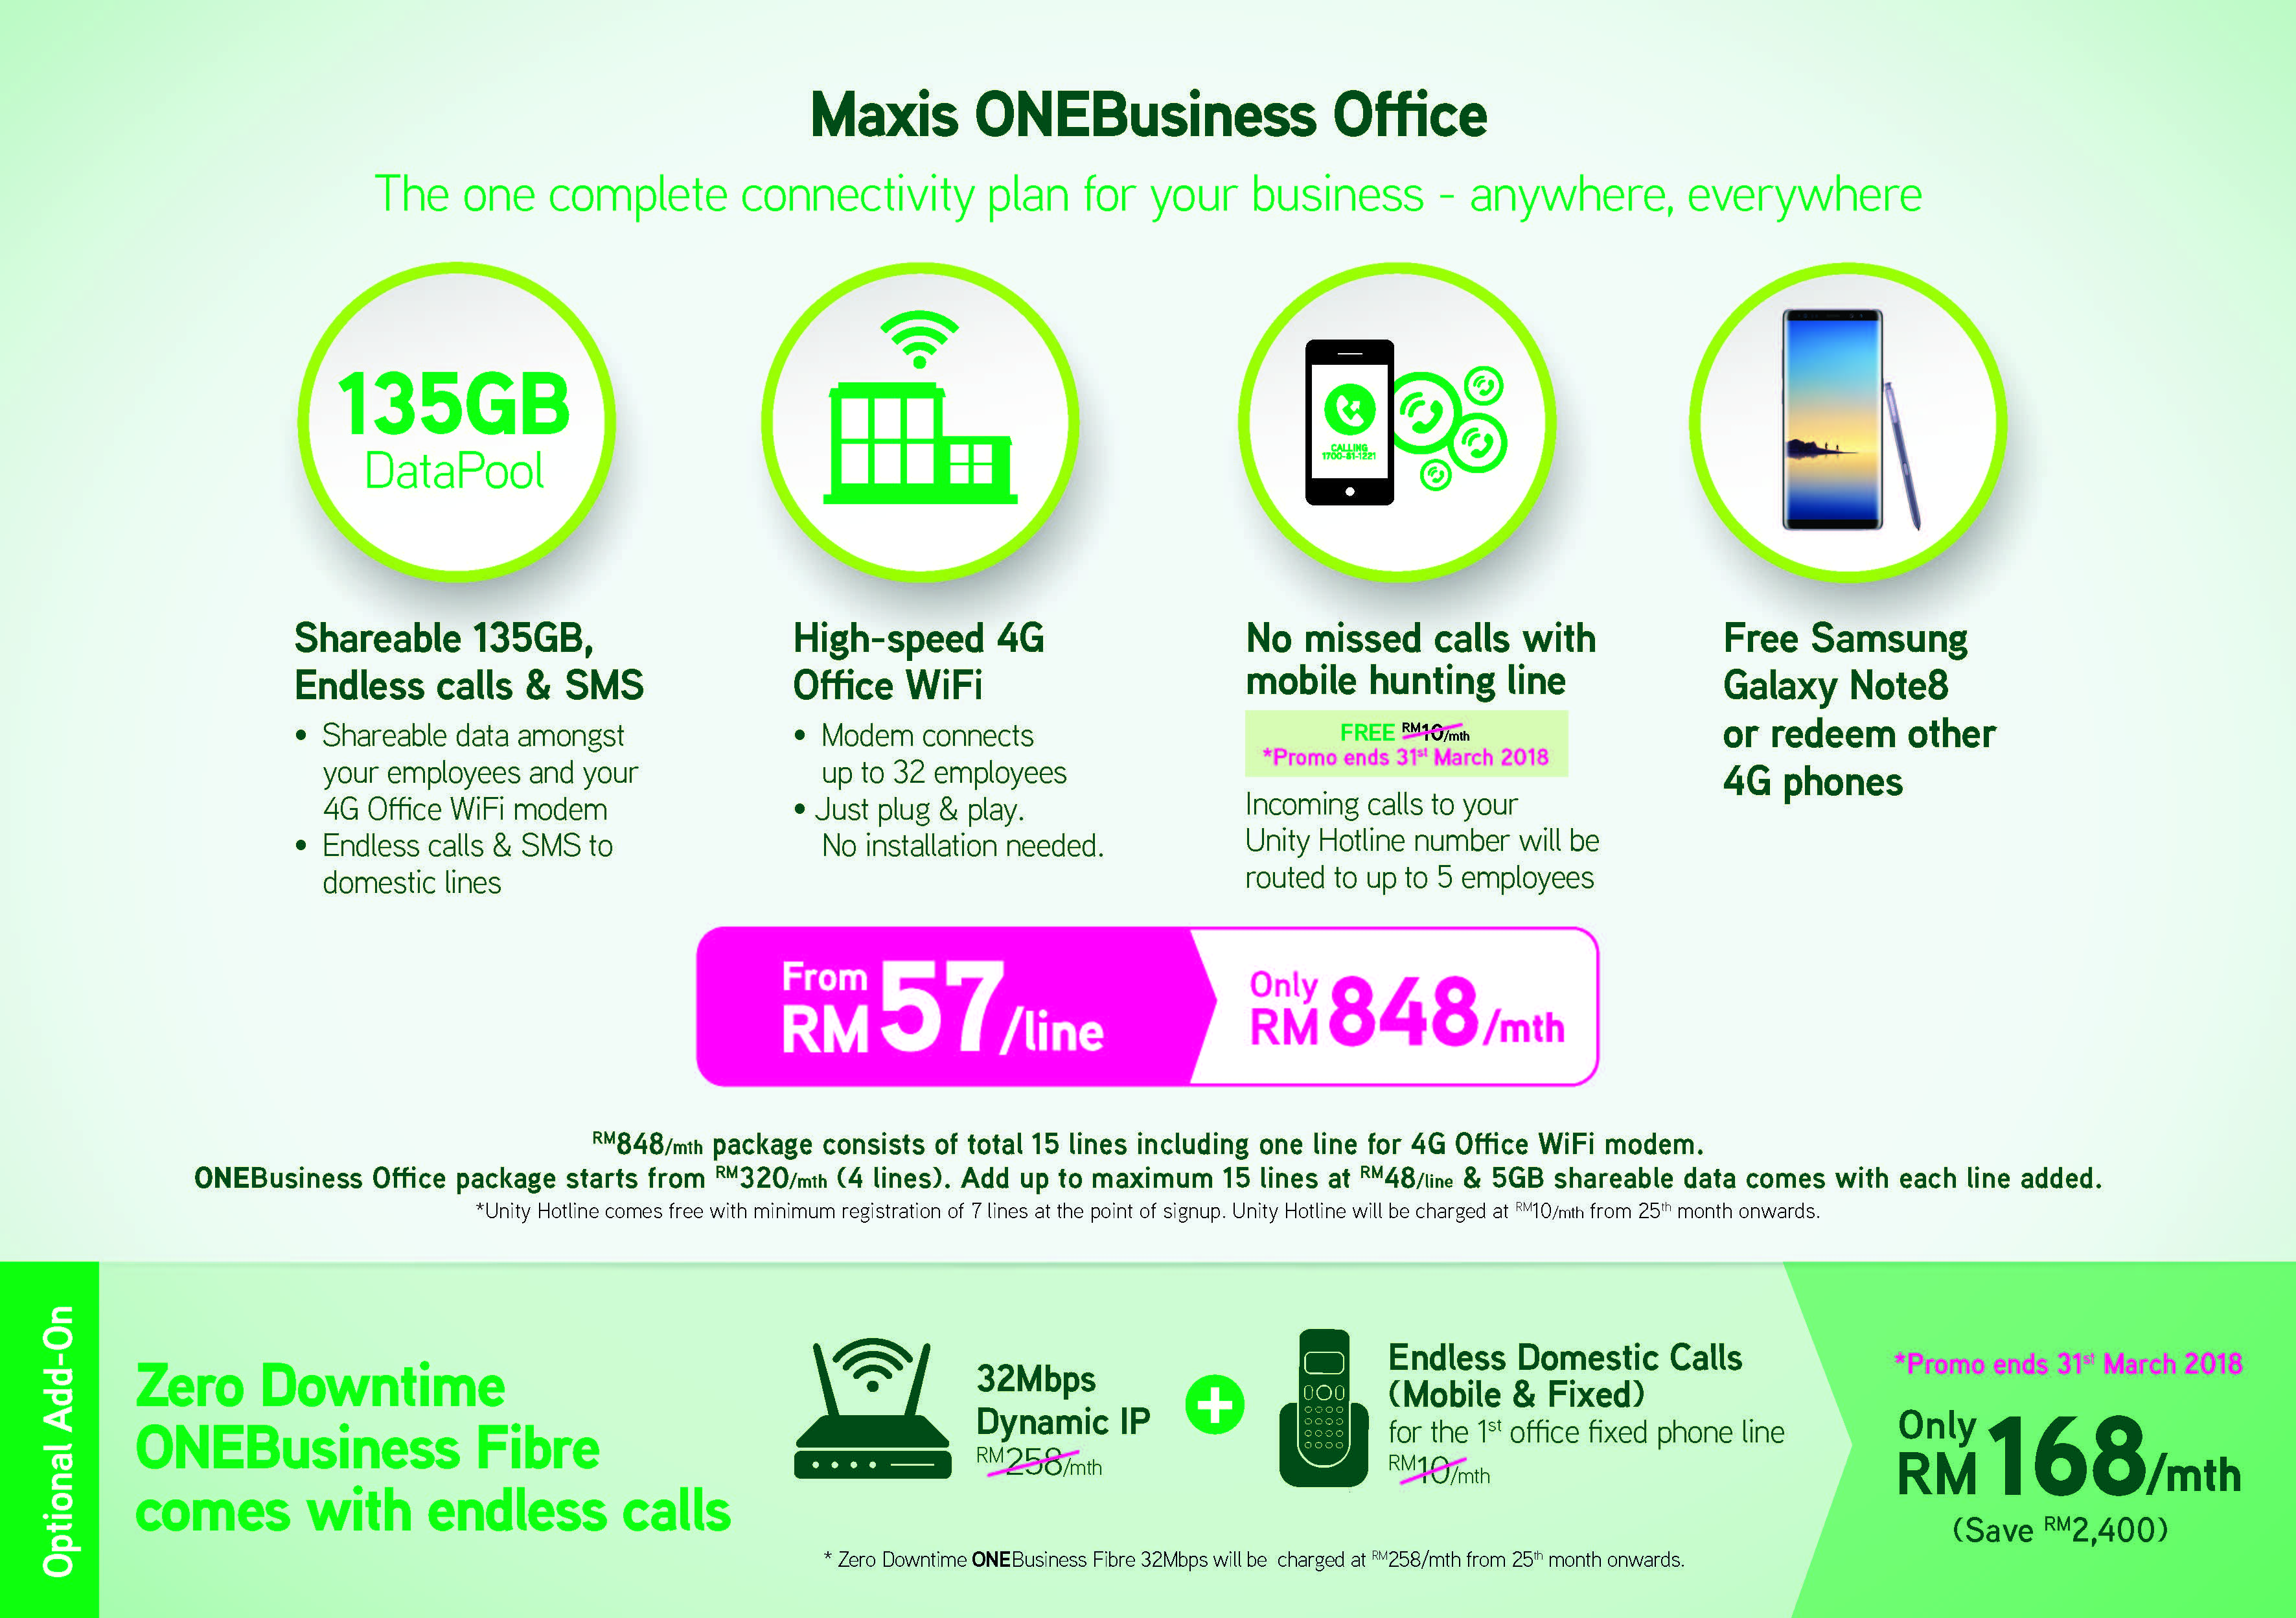 MAXIS ONE BUSINESS OFFICE